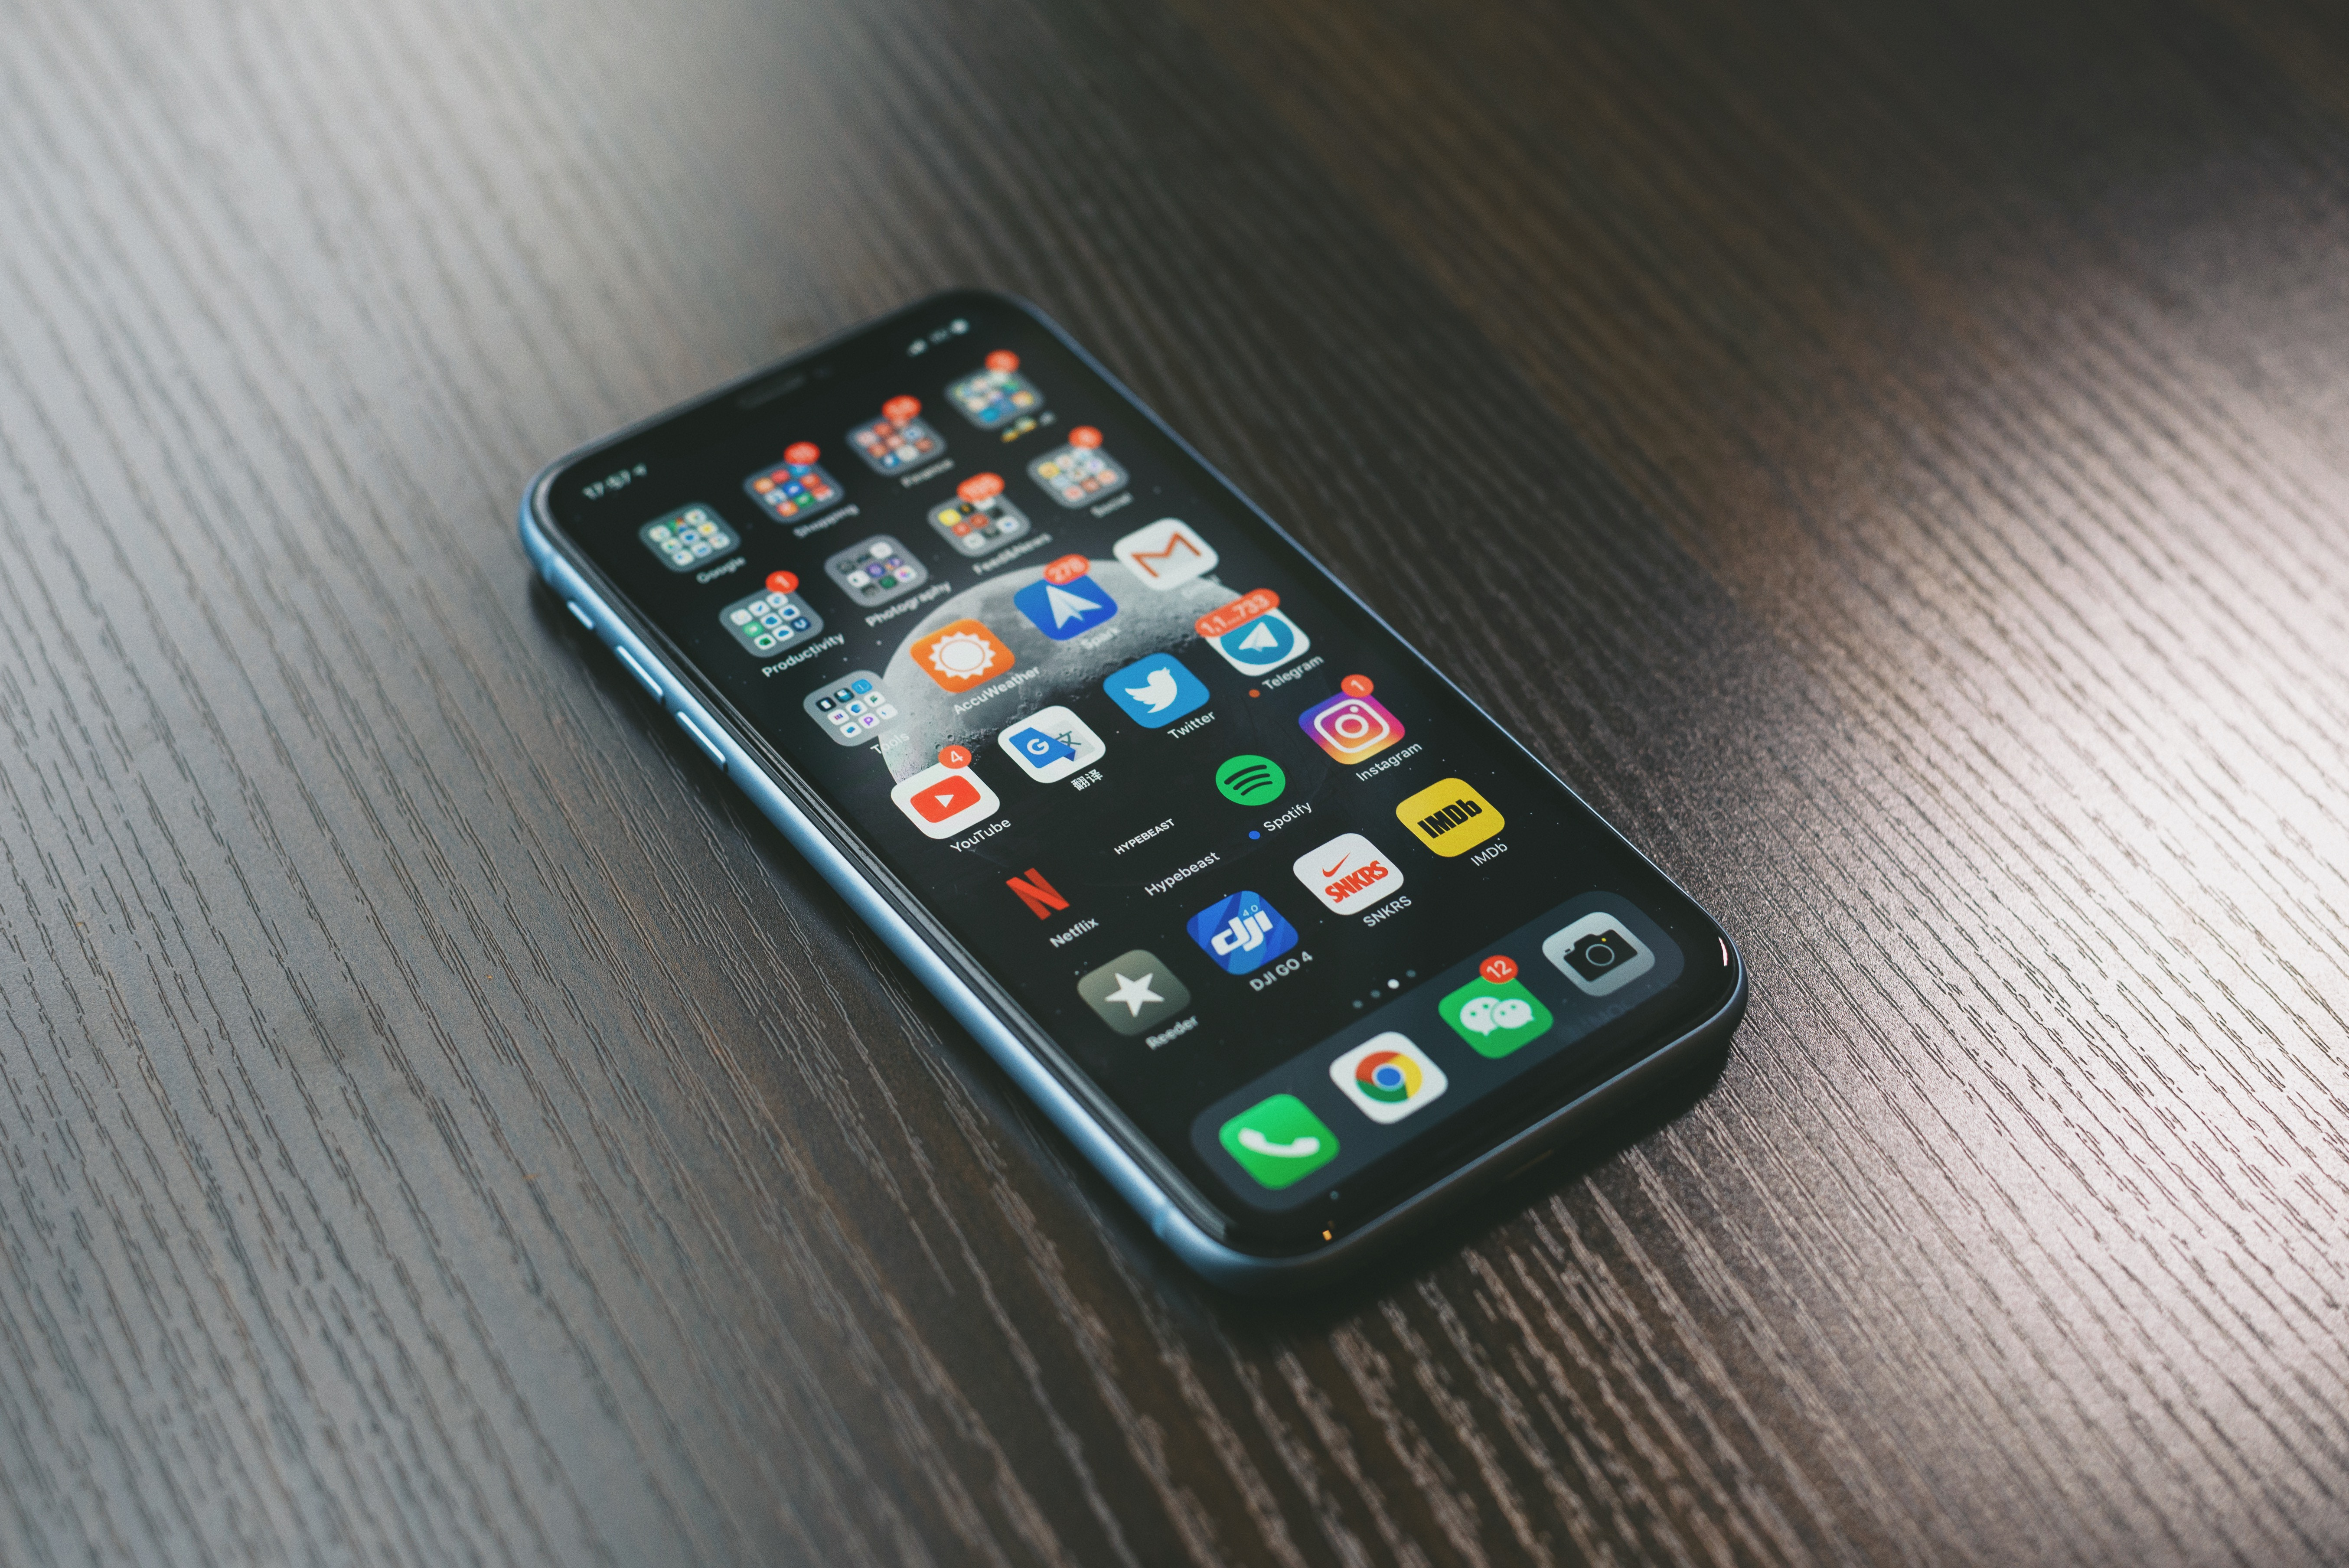 mobile app represented by mobile phone displaying app icons